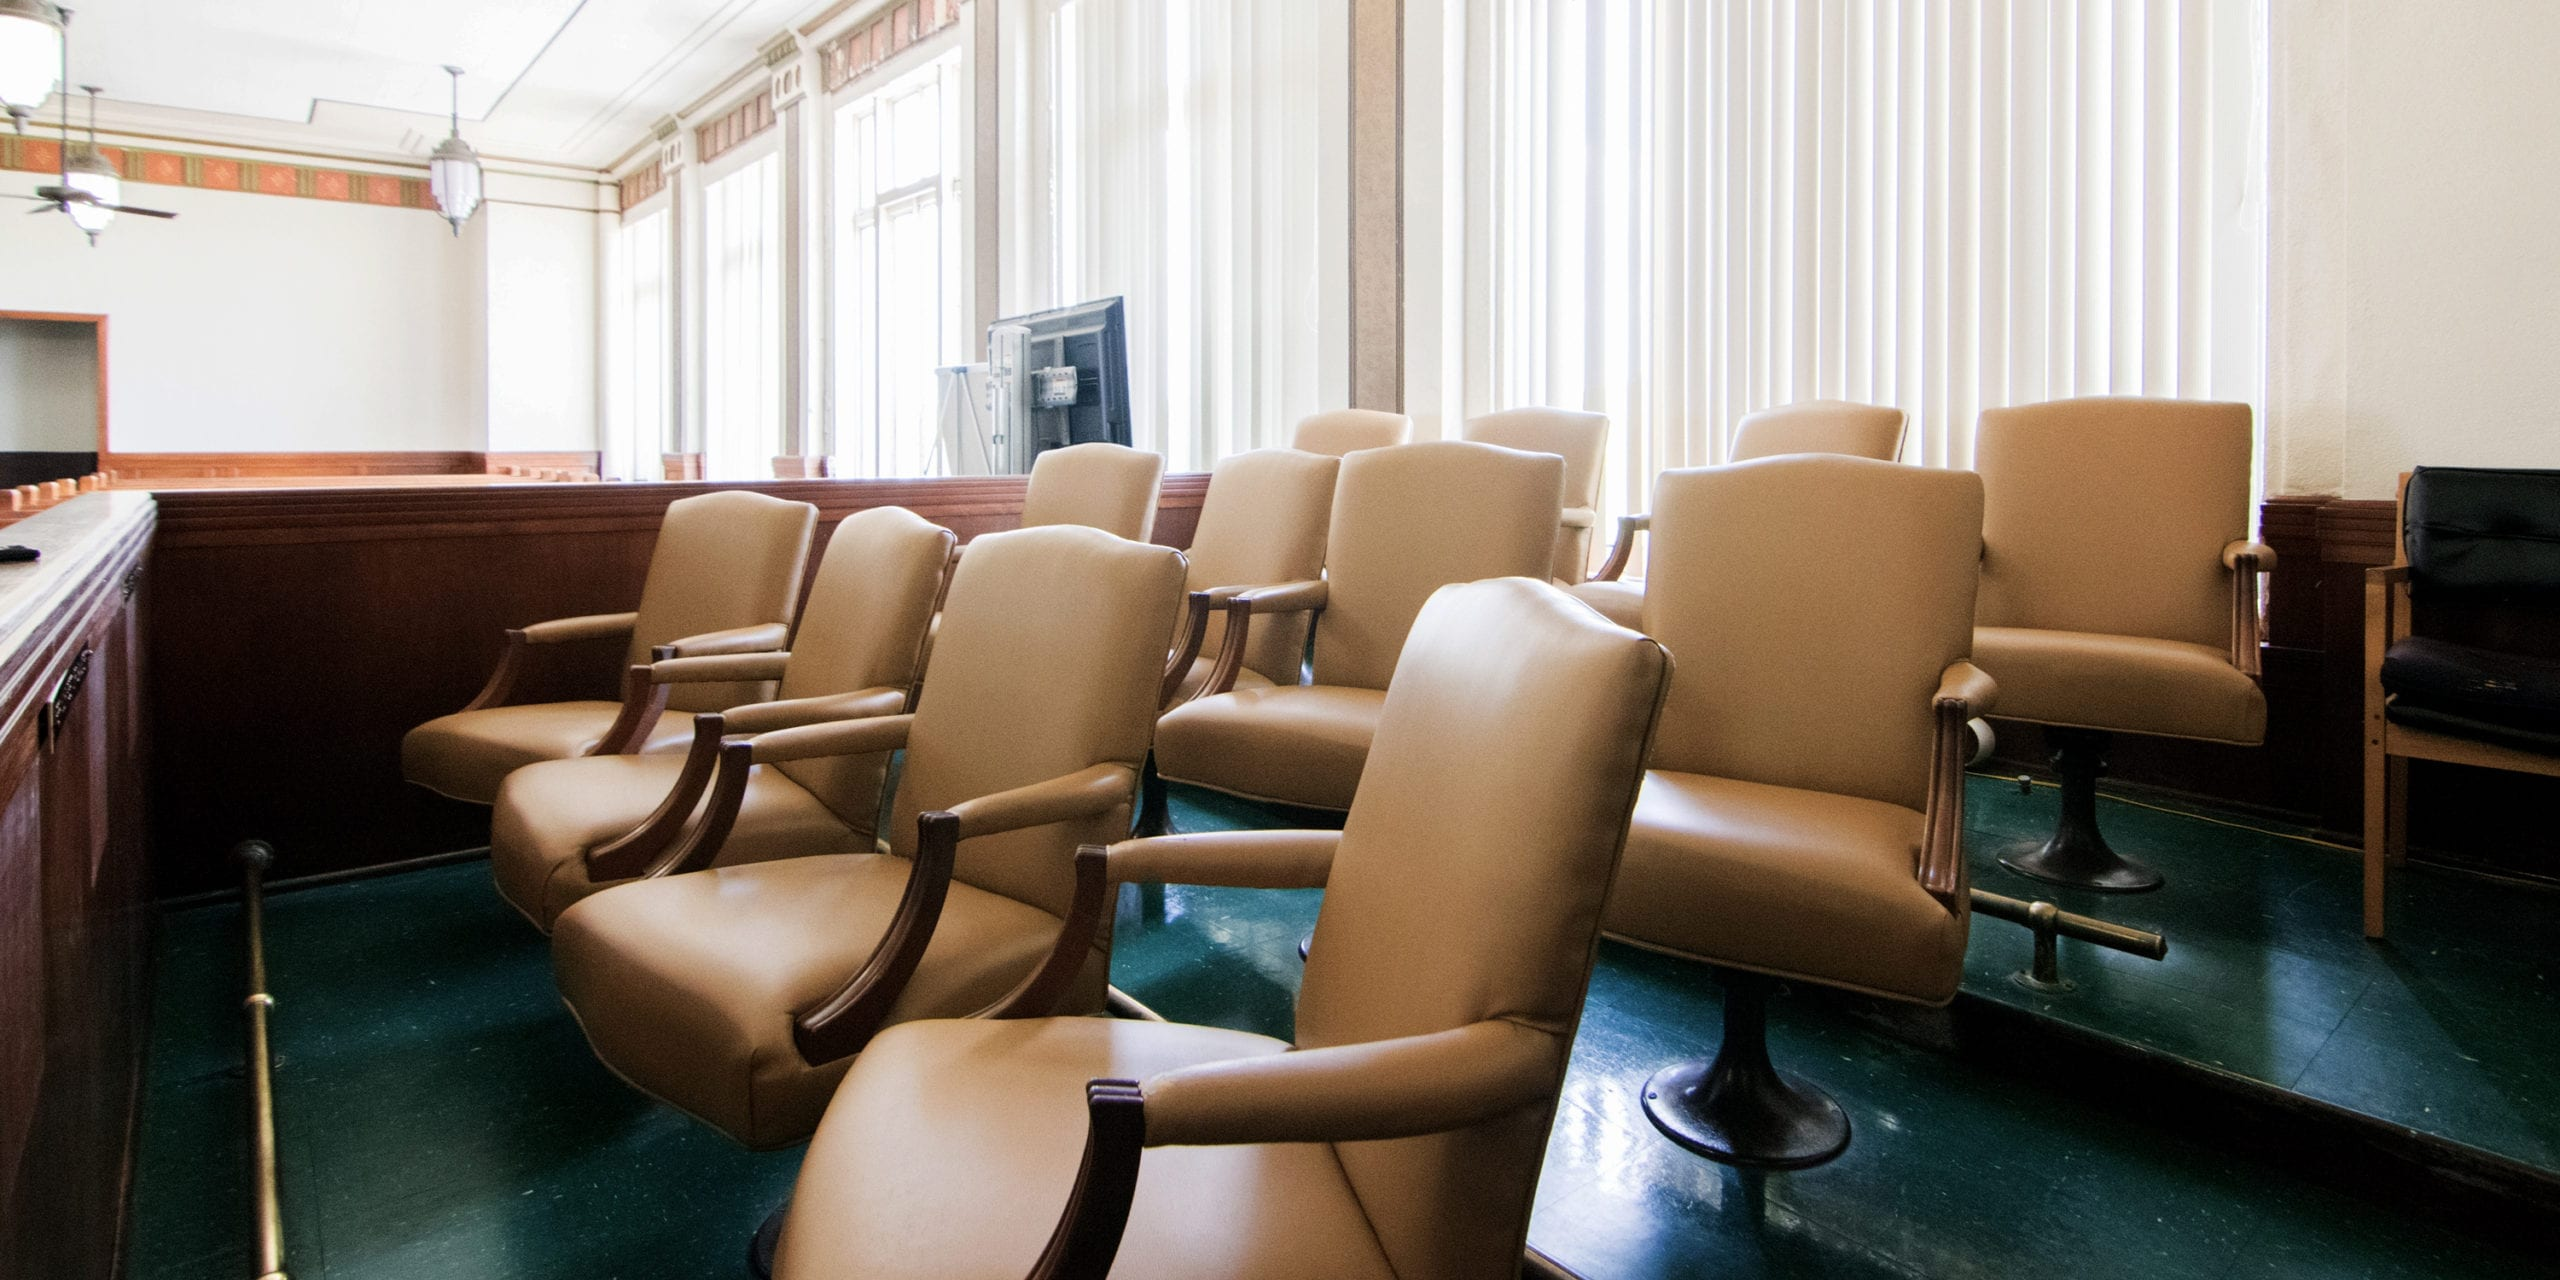 Chairs in a jury box. Photo by Flickr user Patrick Feller.